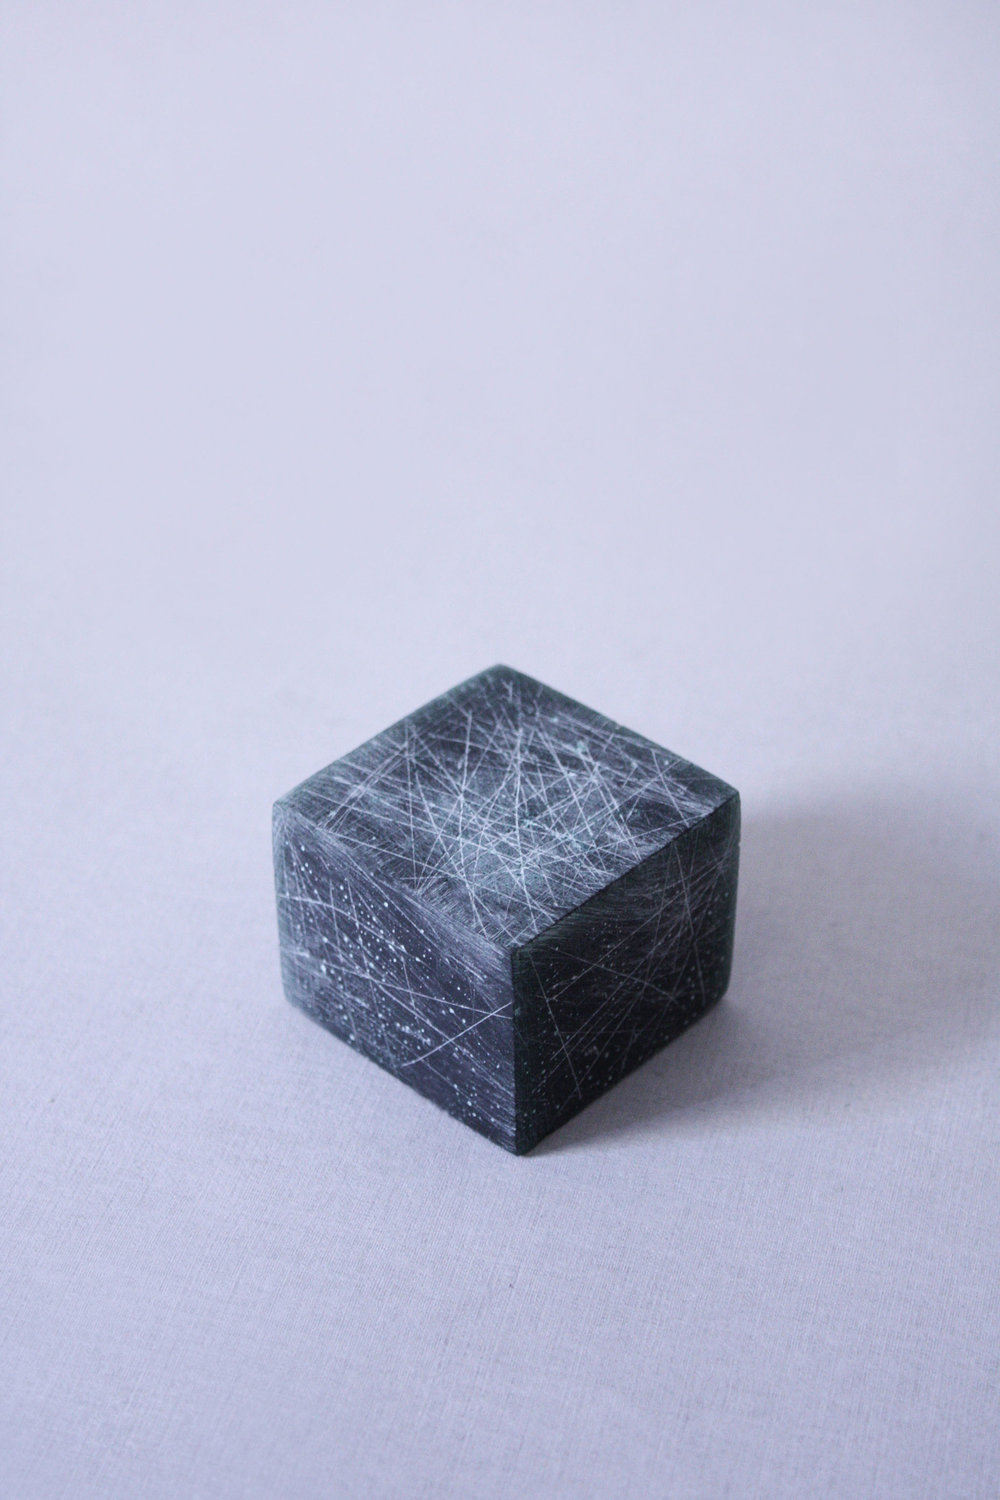 Frosted Ice - Resin block